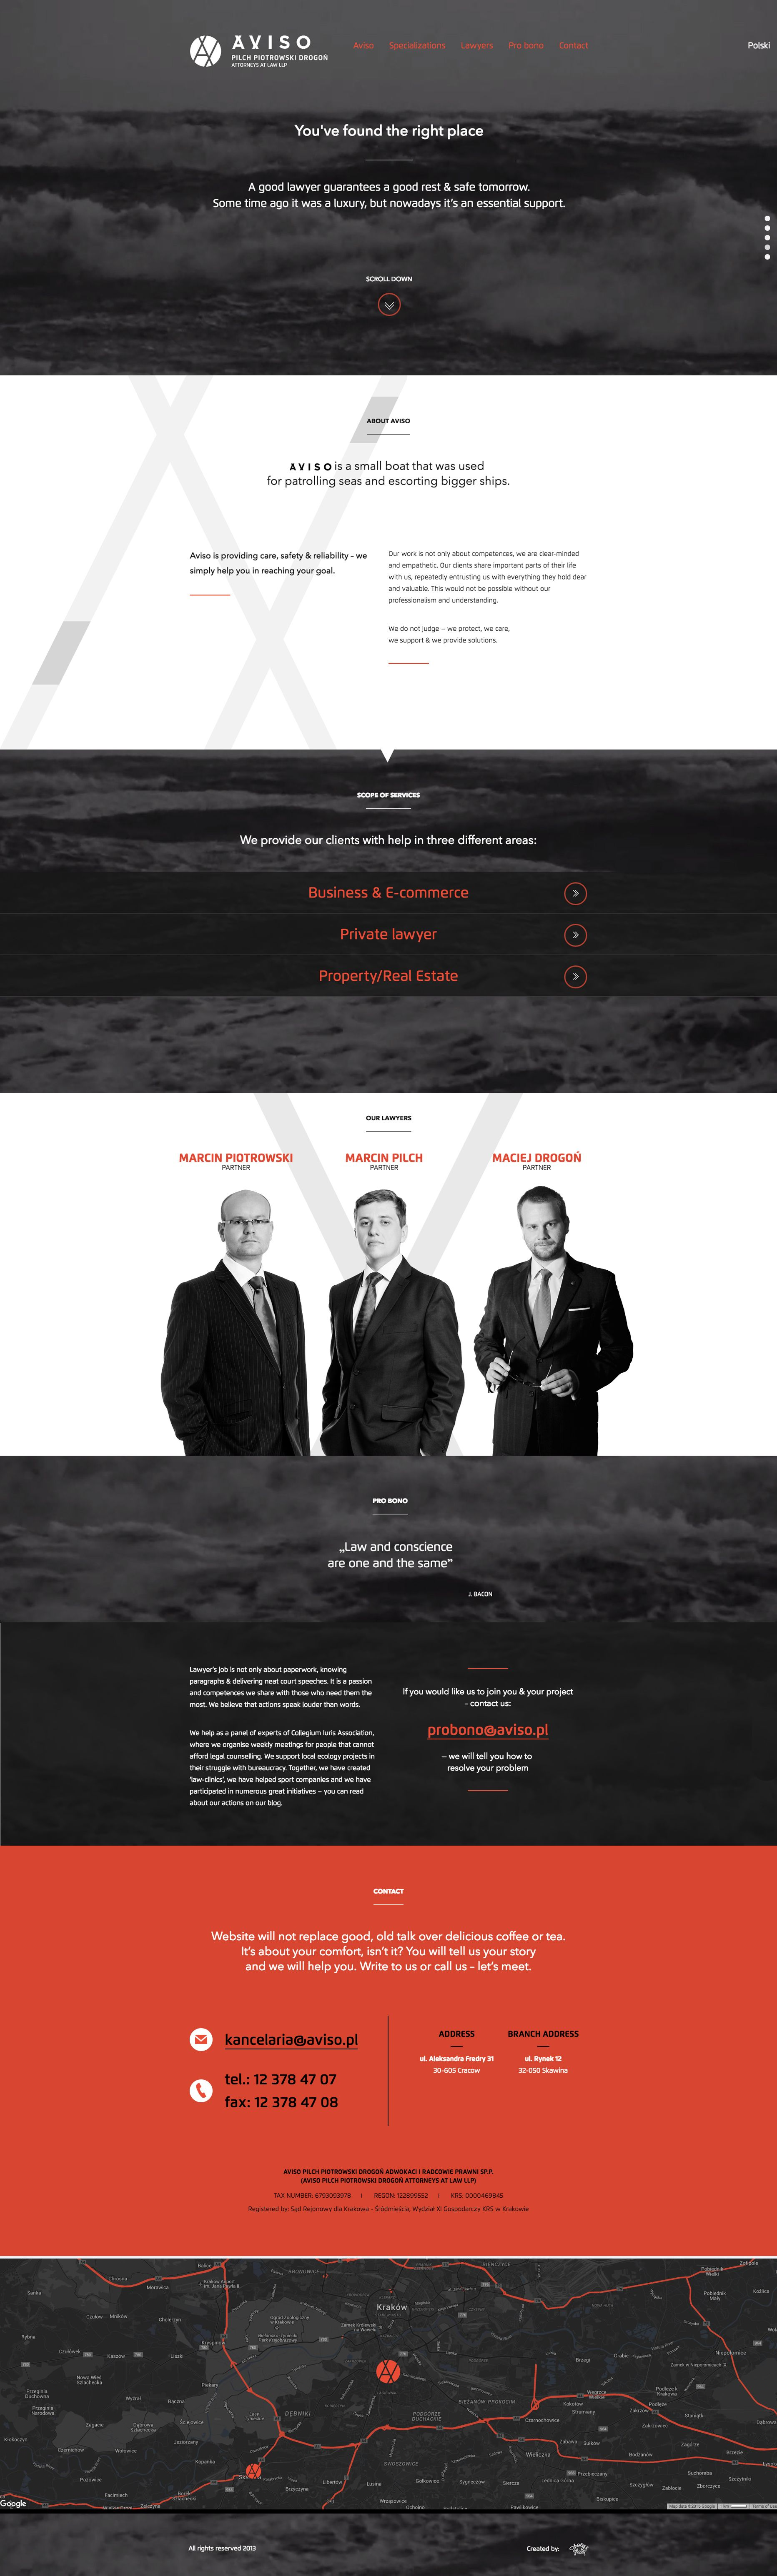 Are These The 10 Best Law Firm Website Designs For 2016 Law Firm Website Design Law Firm Website Lawyer Website